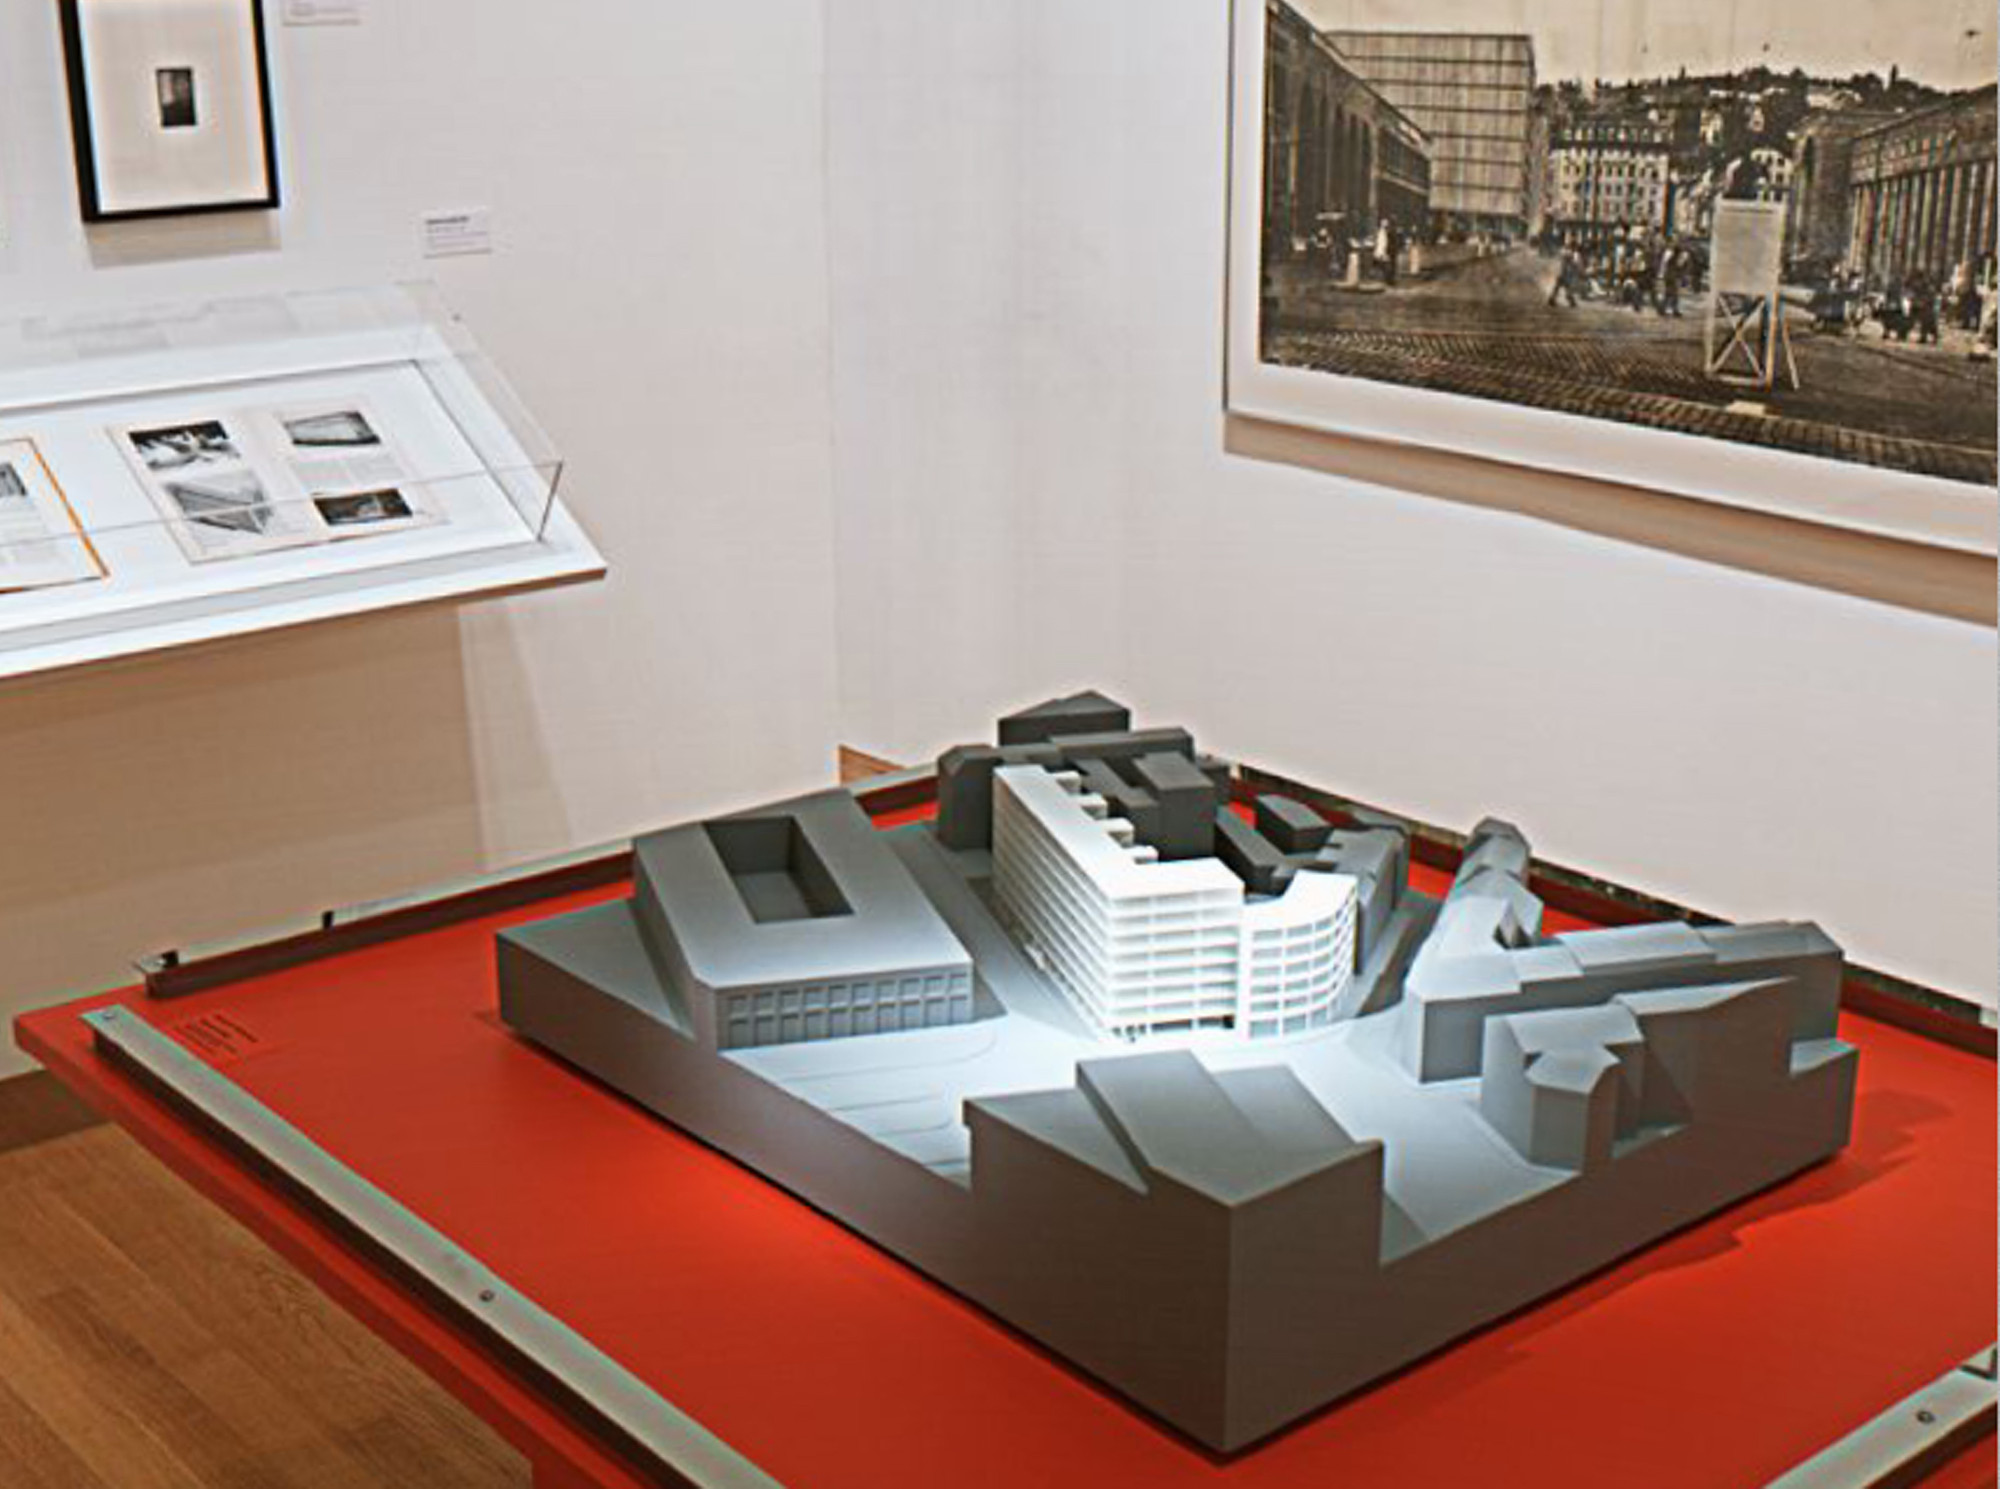 Ludwig Mies van der Rohe. Bank and Office Building, project, Stuttgart, Germany, Urban context model. 1928